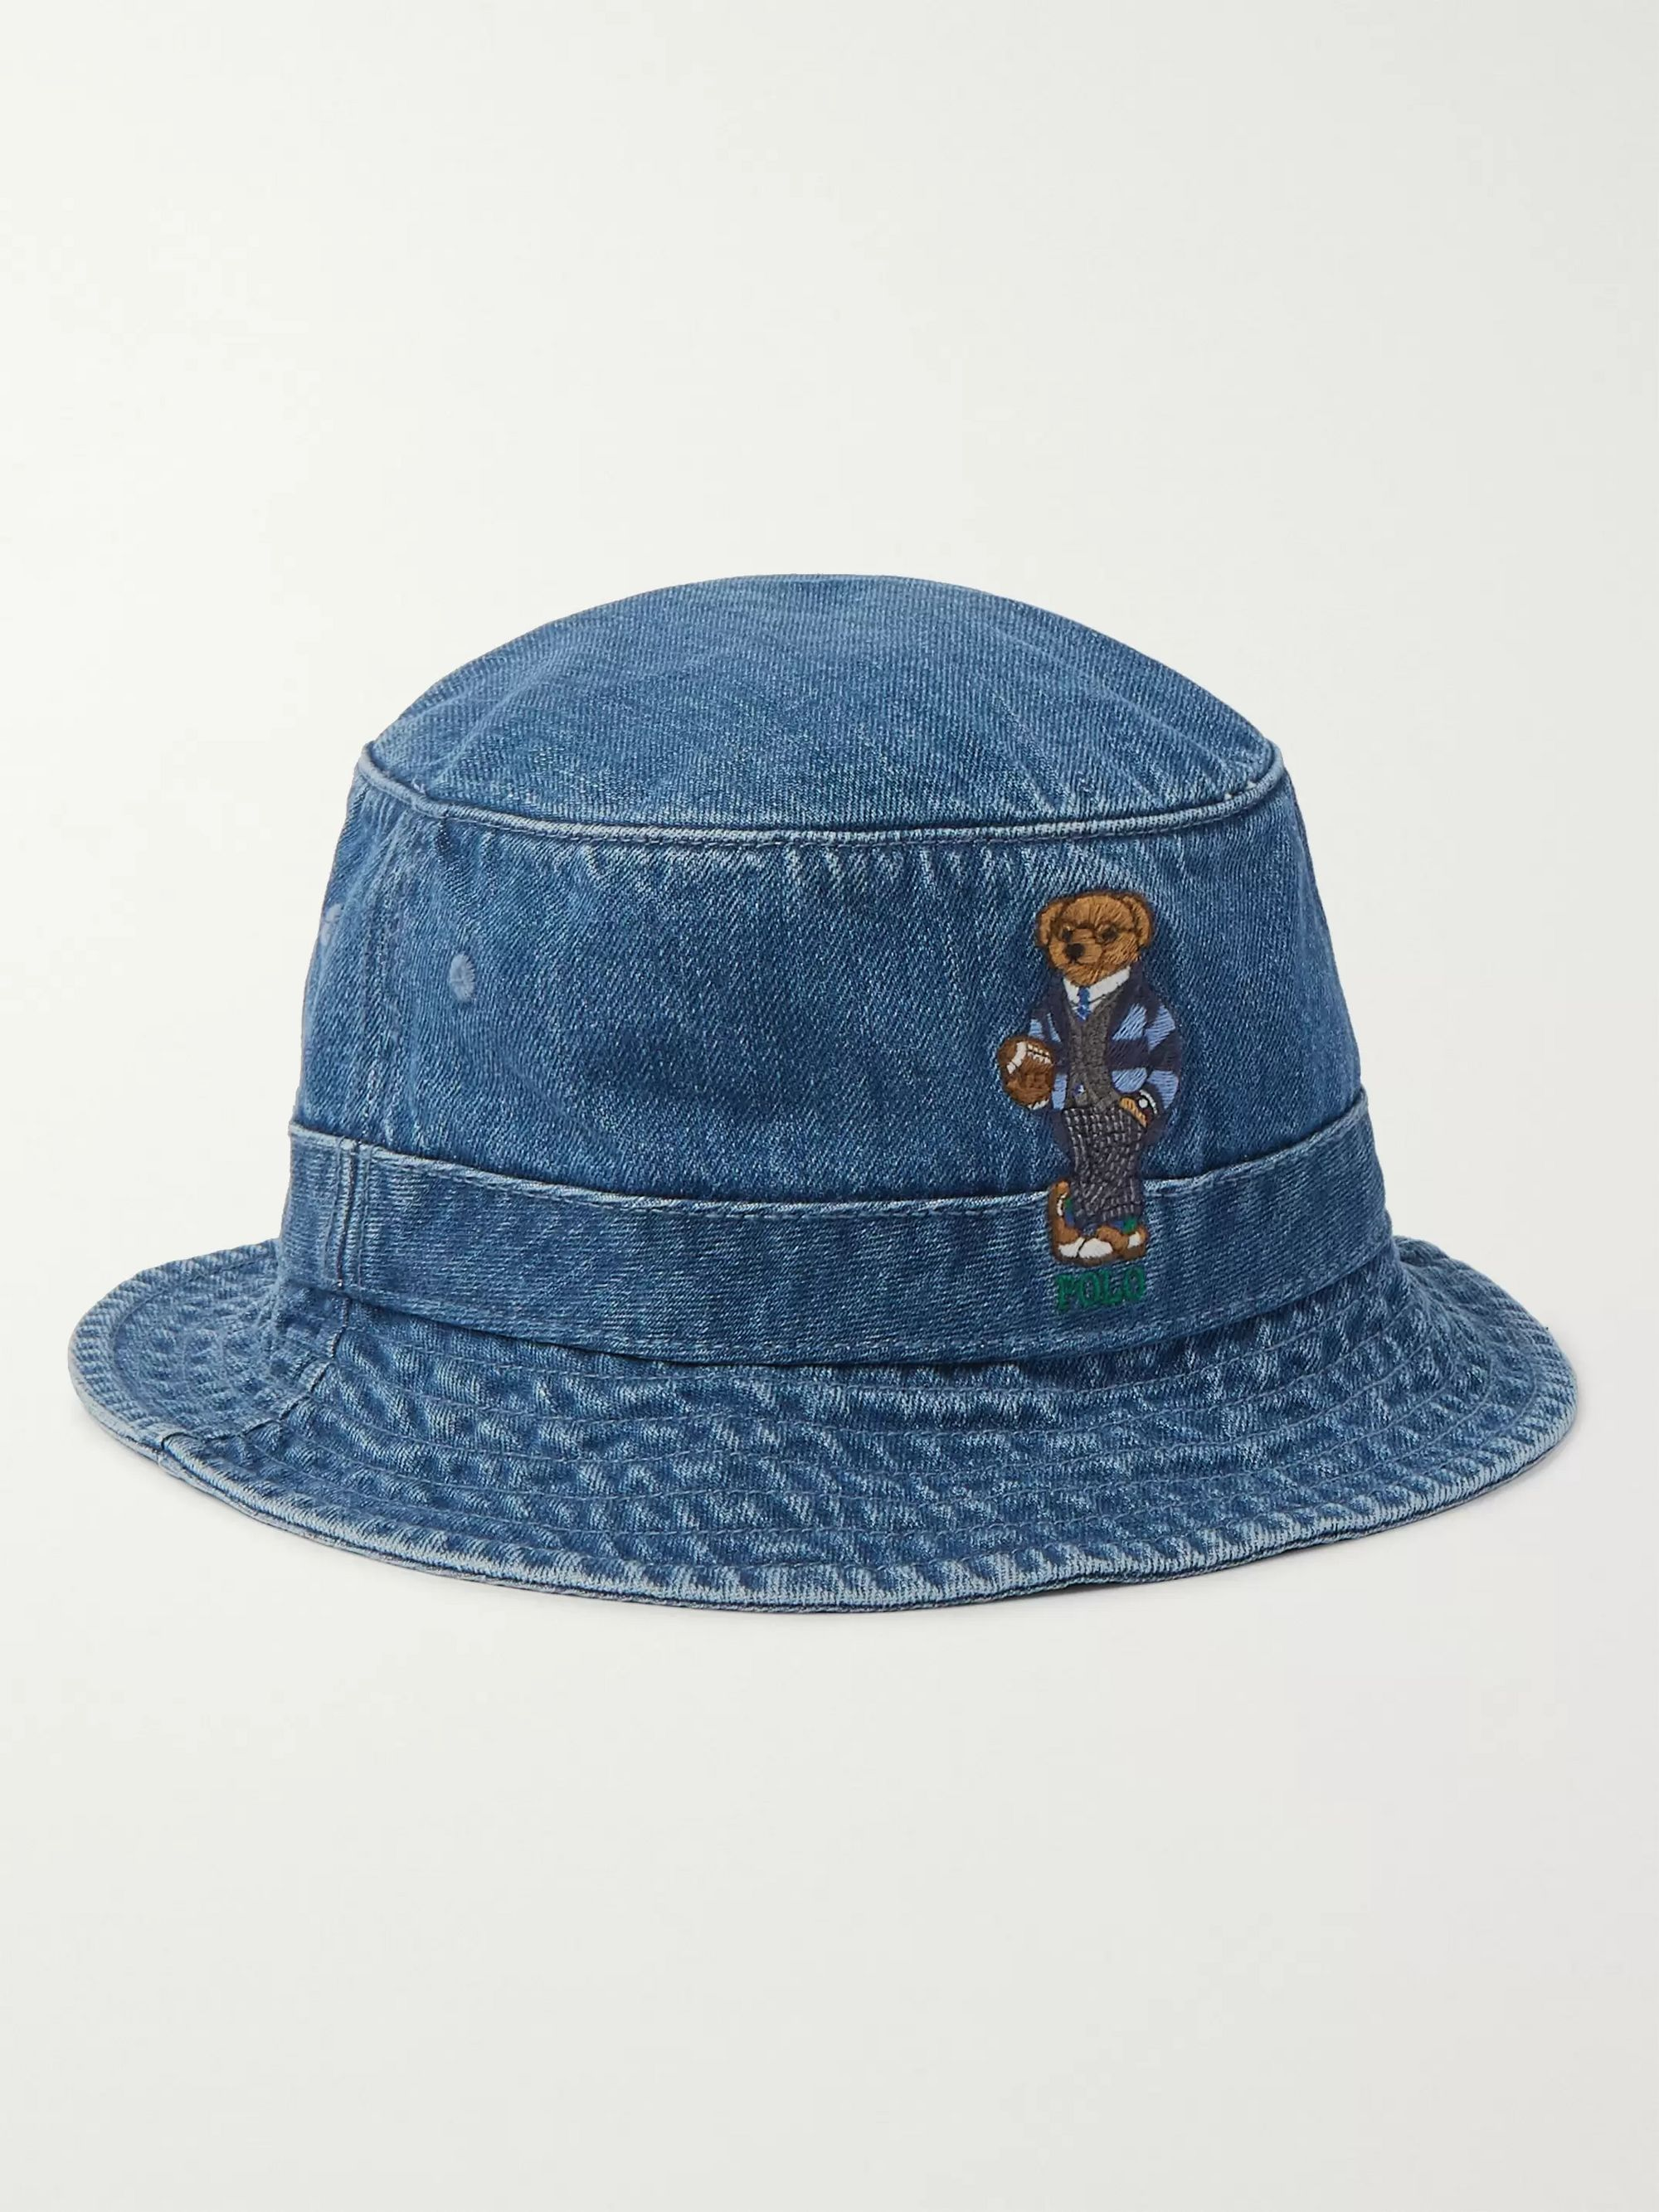 Polo Ralph Lauren Embroidered Denim Bucket Hat